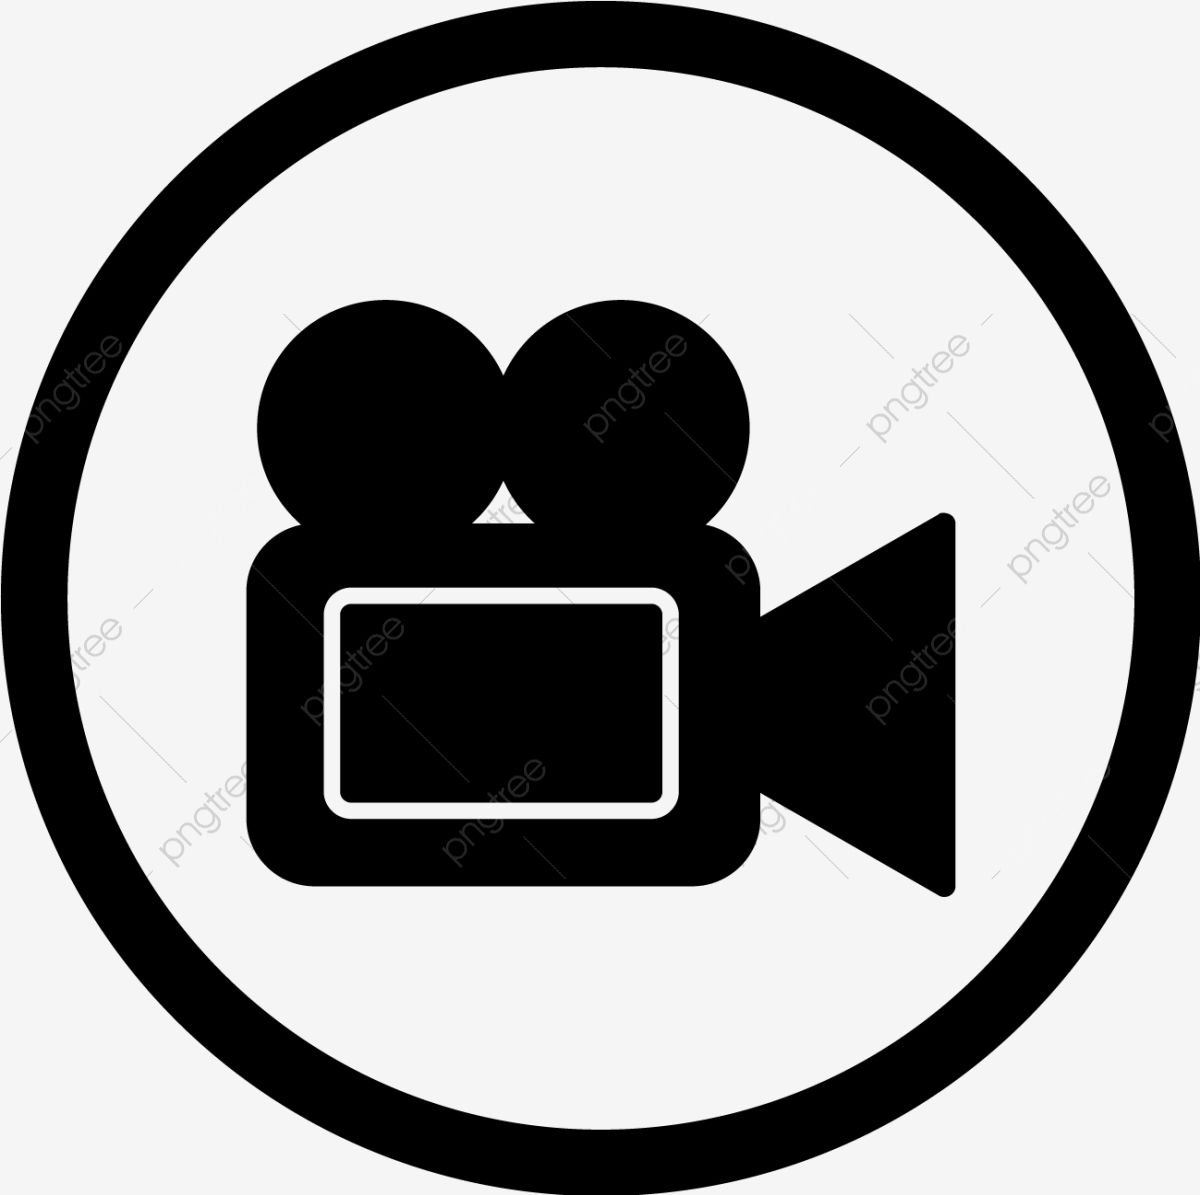 Vector Video Camera Icon Video Icon Multimedia Icon Movie Icon Png And Vector With Transparent Background For Free Download Camera Icon Iconic Movies Logo Design Template